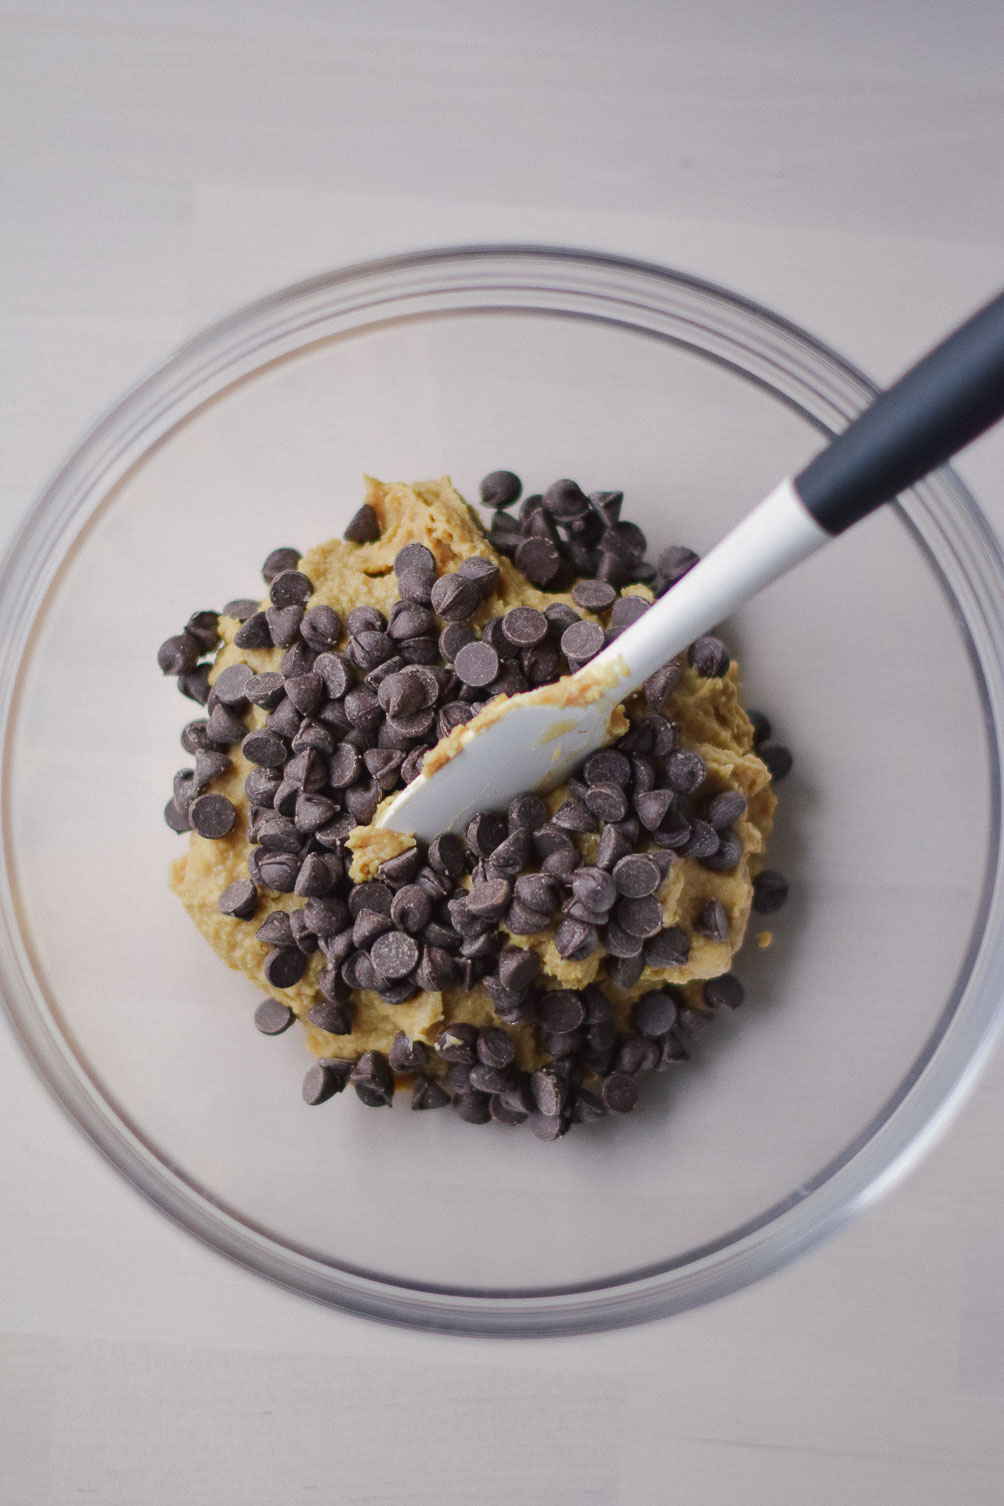 easy dessert recipe for healthy edible cookie dough